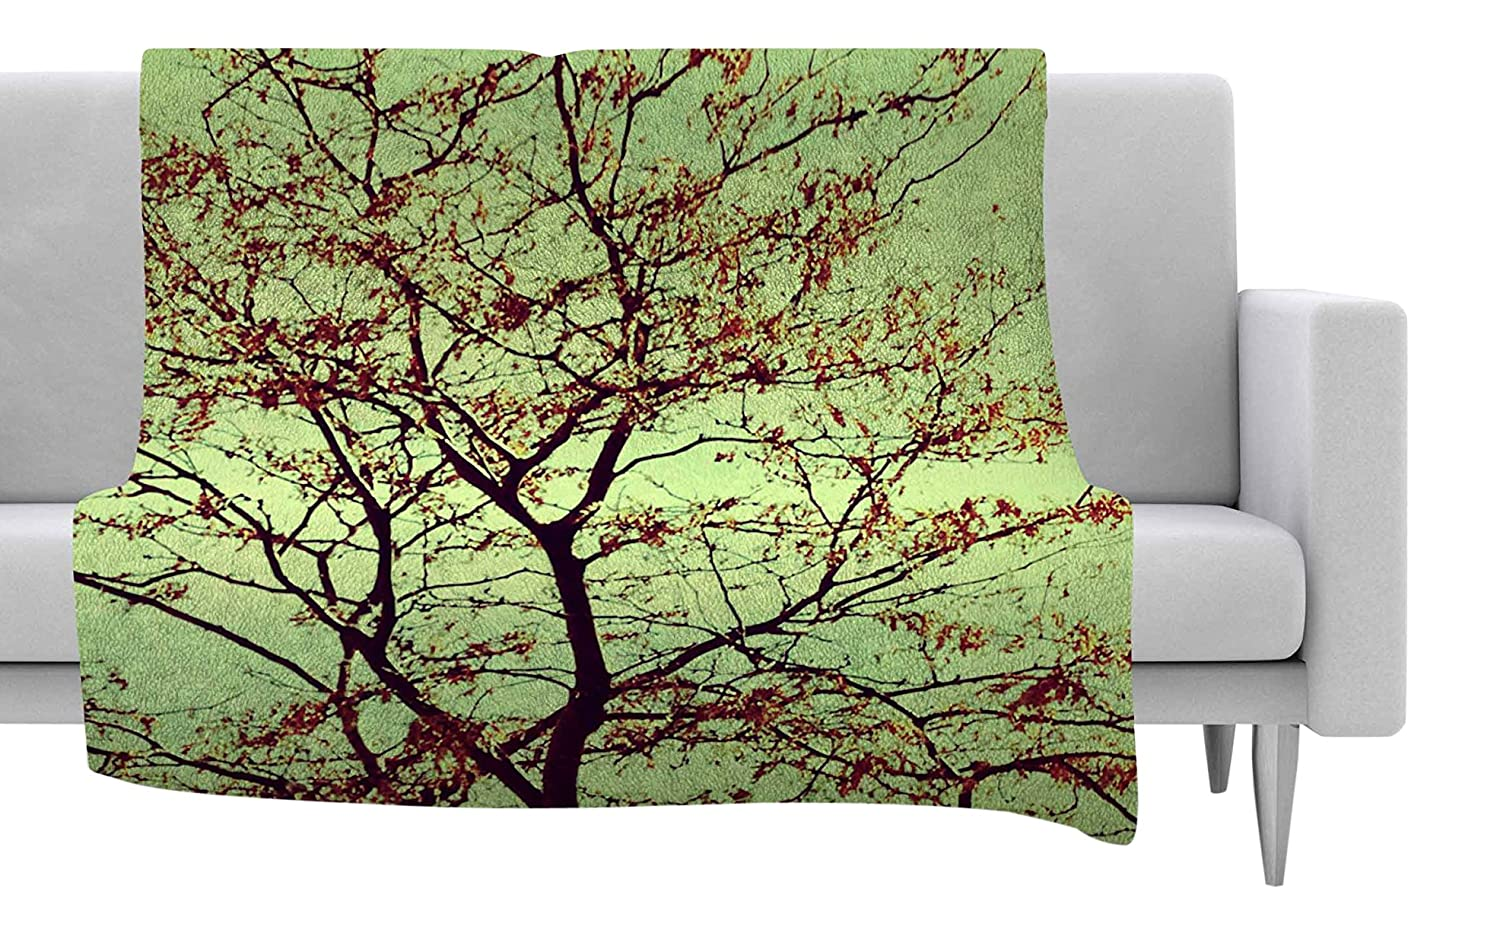 40 by 30-Inch Kess InHouse Sylvia Coomes Modern Fall Tree Green Brown Fleece Throw Blanket 40 X 30